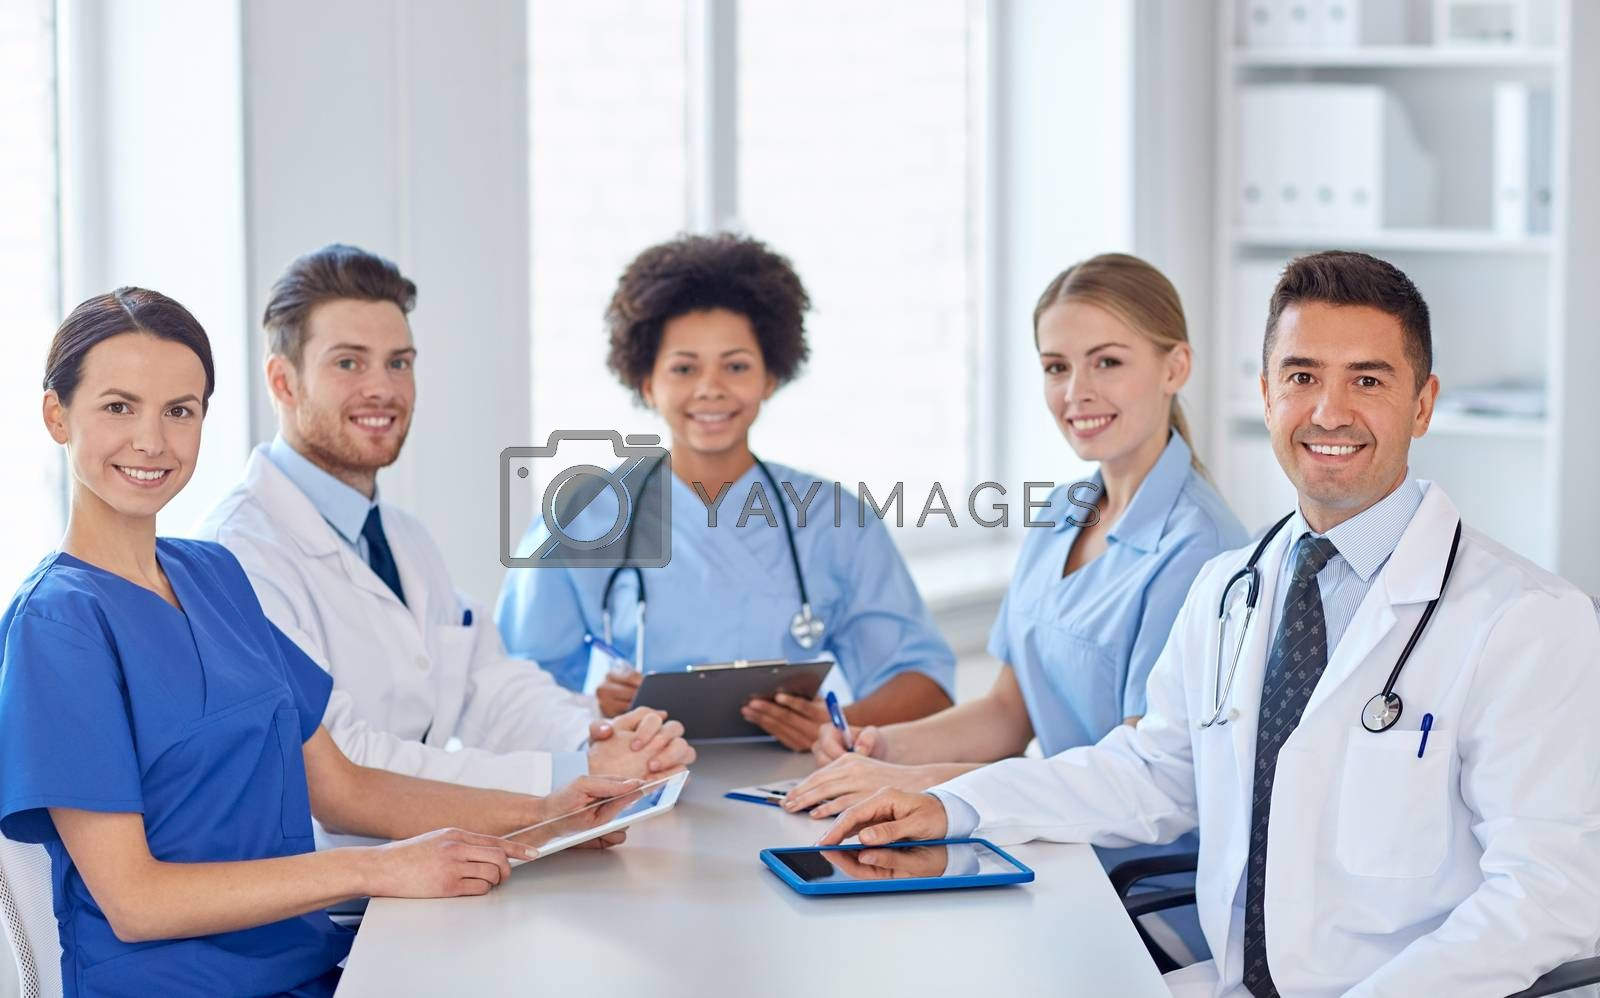 hospital, profession, people and medicine concept - group of happy doctors meeting at medical office